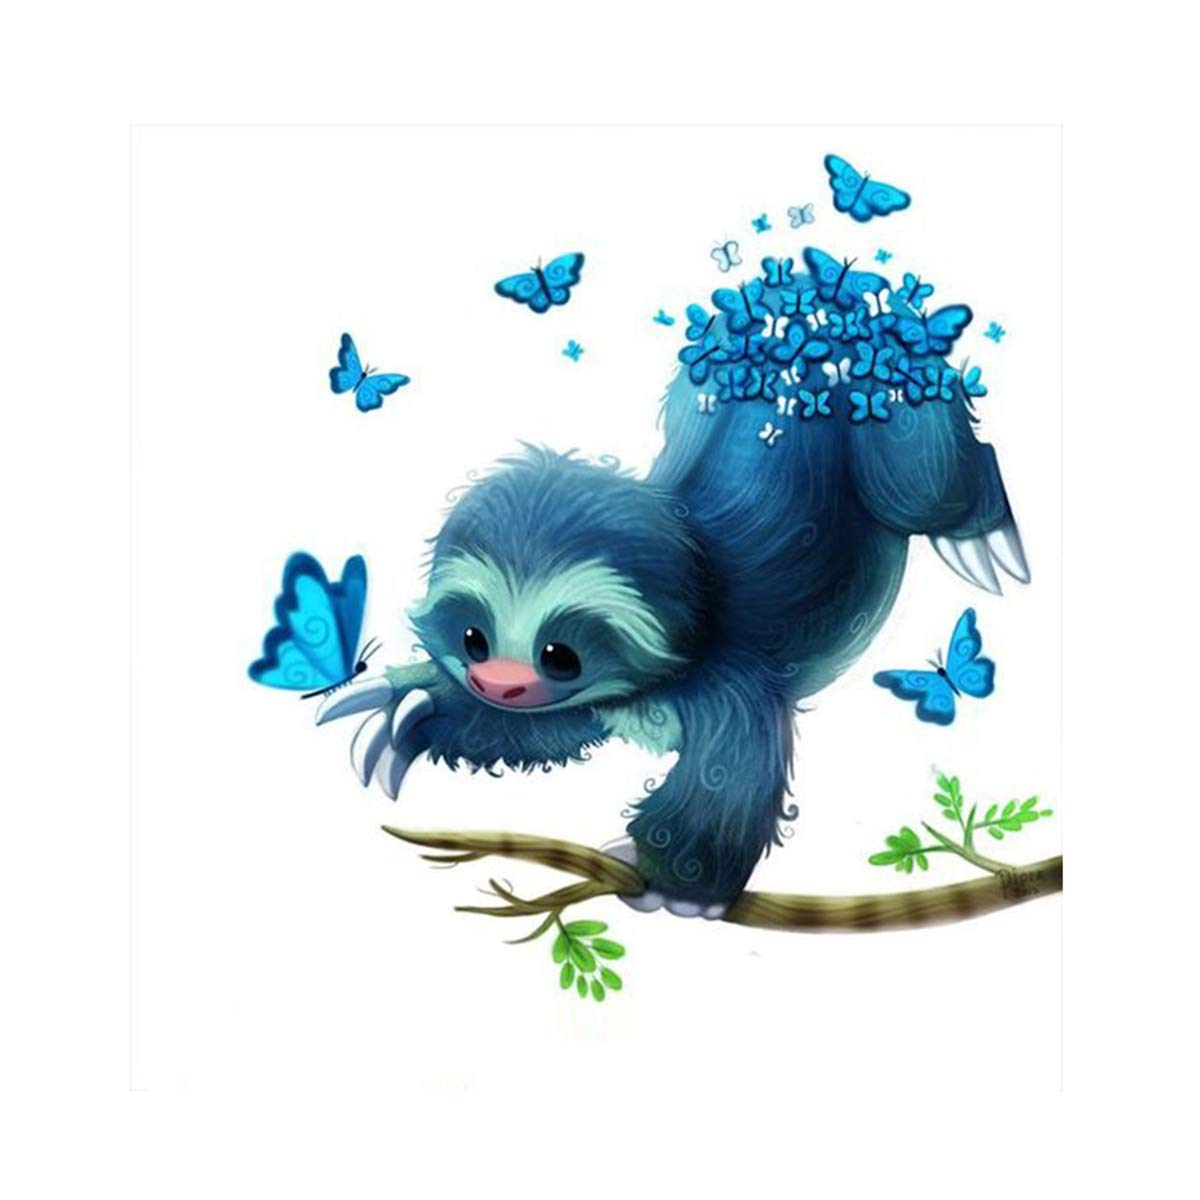 5D Diamond Painting for Adult DIY Full Drill Diamond Art Kits Square Rhinestone Embroidery by Numbers Cute Sloth 11.8X15.7inch